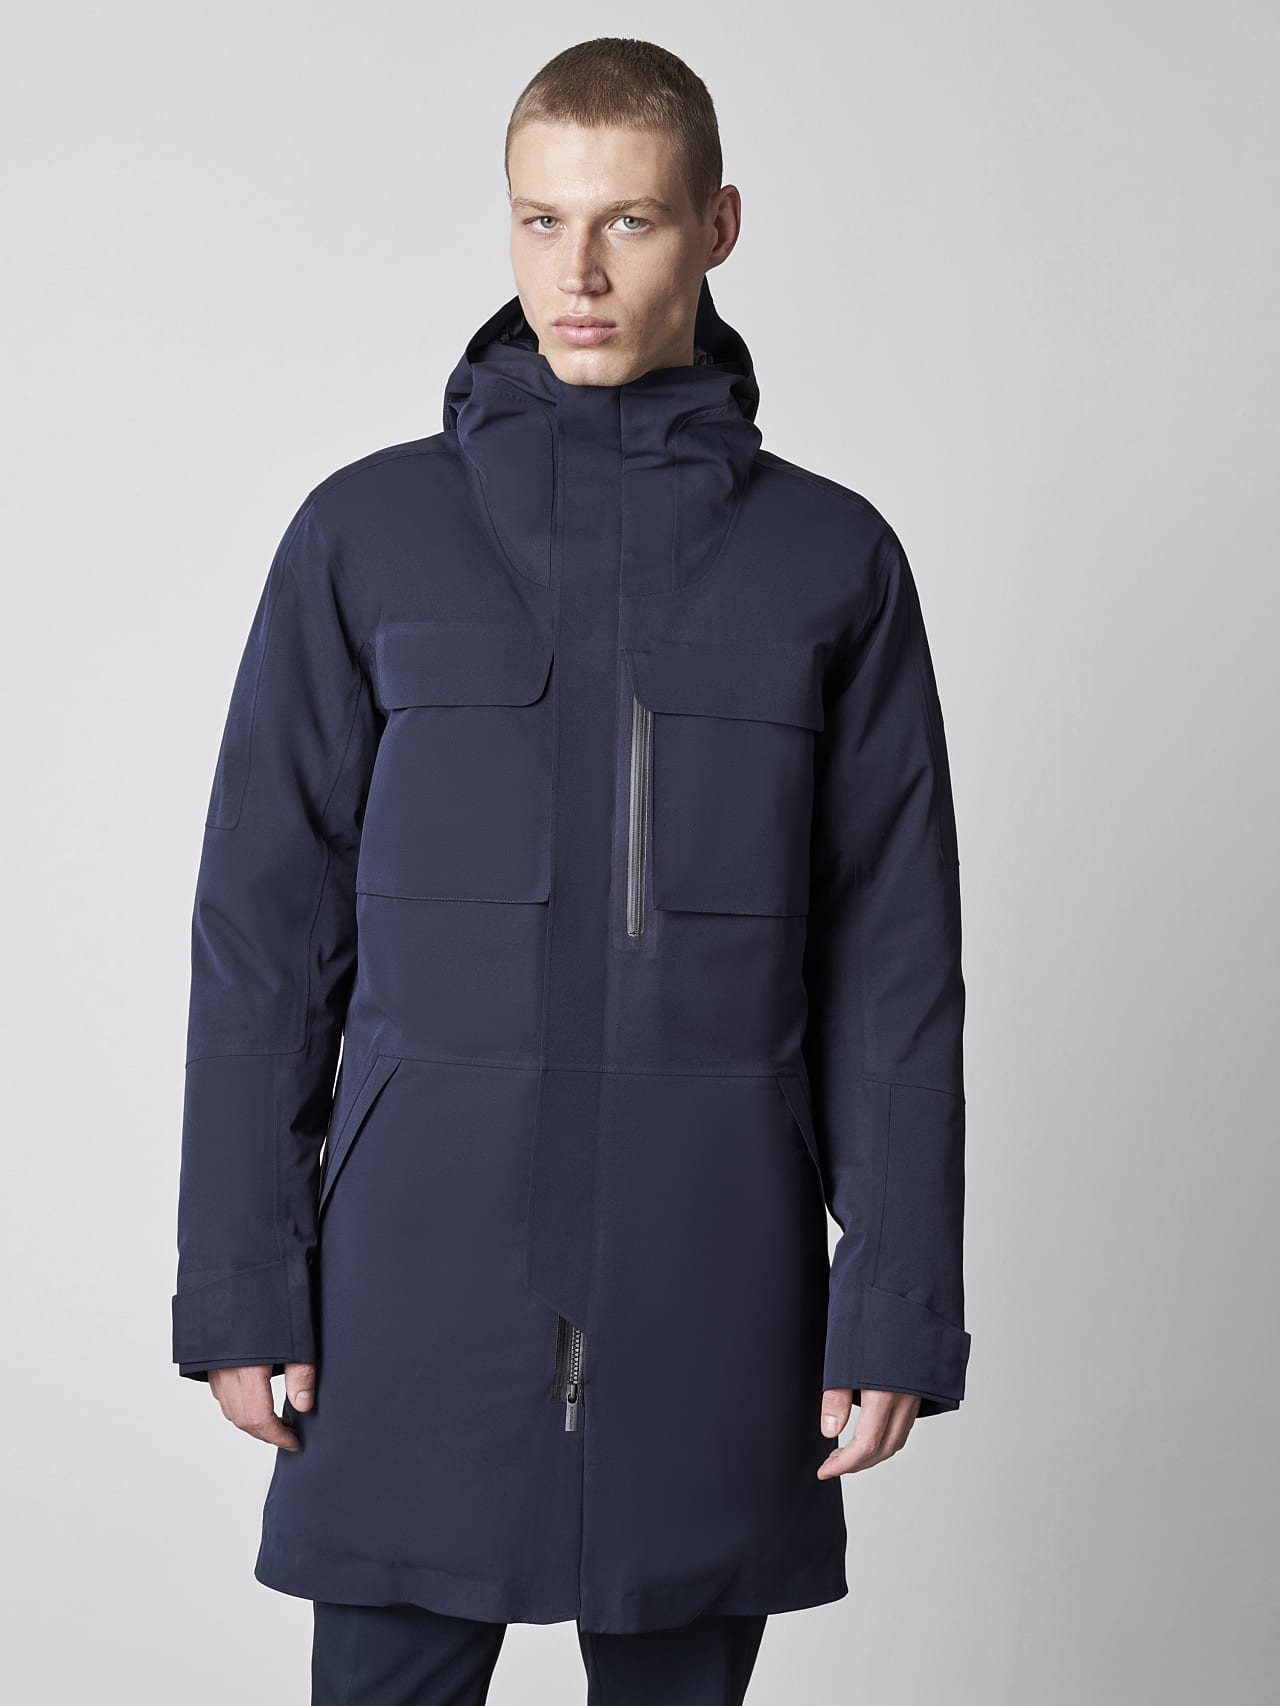 KOOV V6.Y5.02 Packable and Waterproof Winter Parka navy Front Alpha Tauri